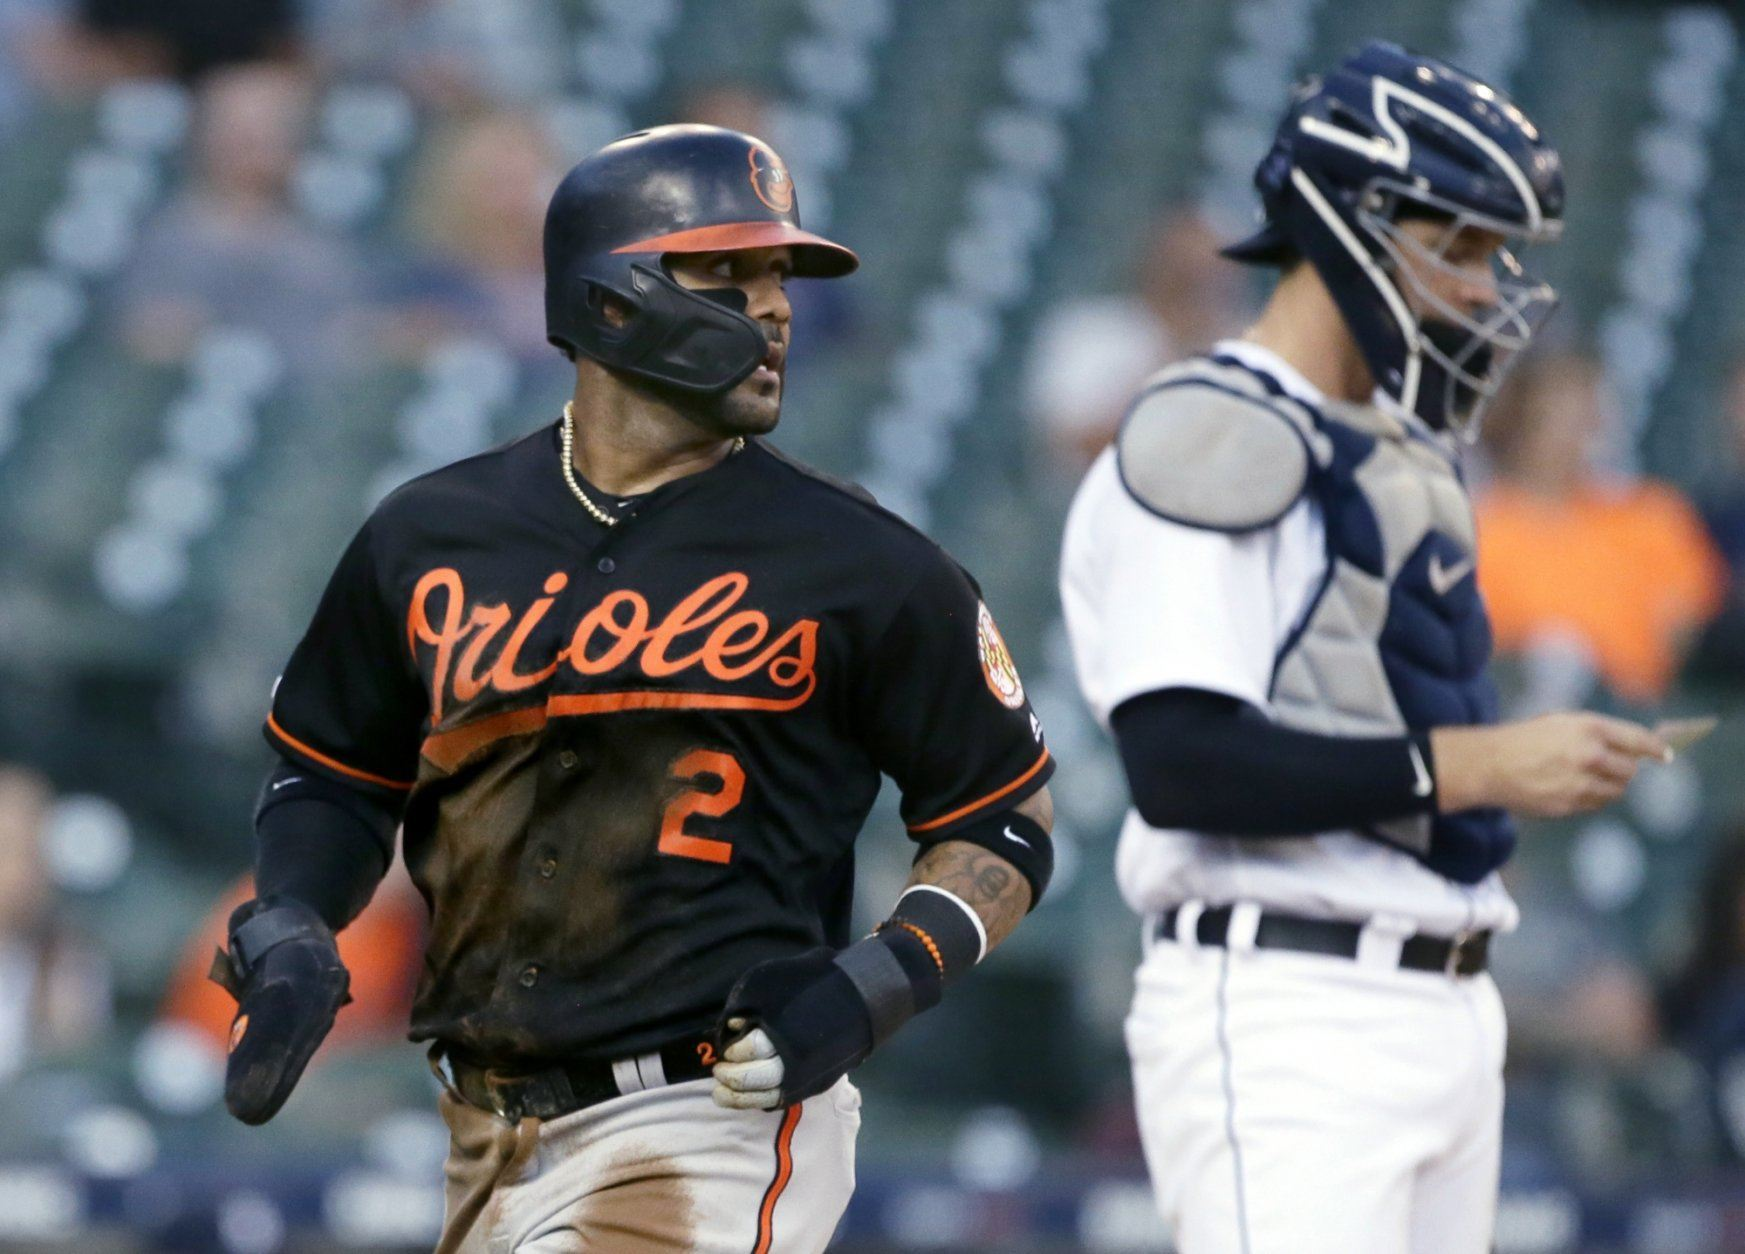 Baltimore Orioles' Jonathan Villar (2) scores past Detroit Tigers catcher Grayson Greiner on a single by Trey Mancini during the first inning of a baseball game Friday, Sept. 13, 2019, in Detroit. (AP Photo/Duane Burleson)